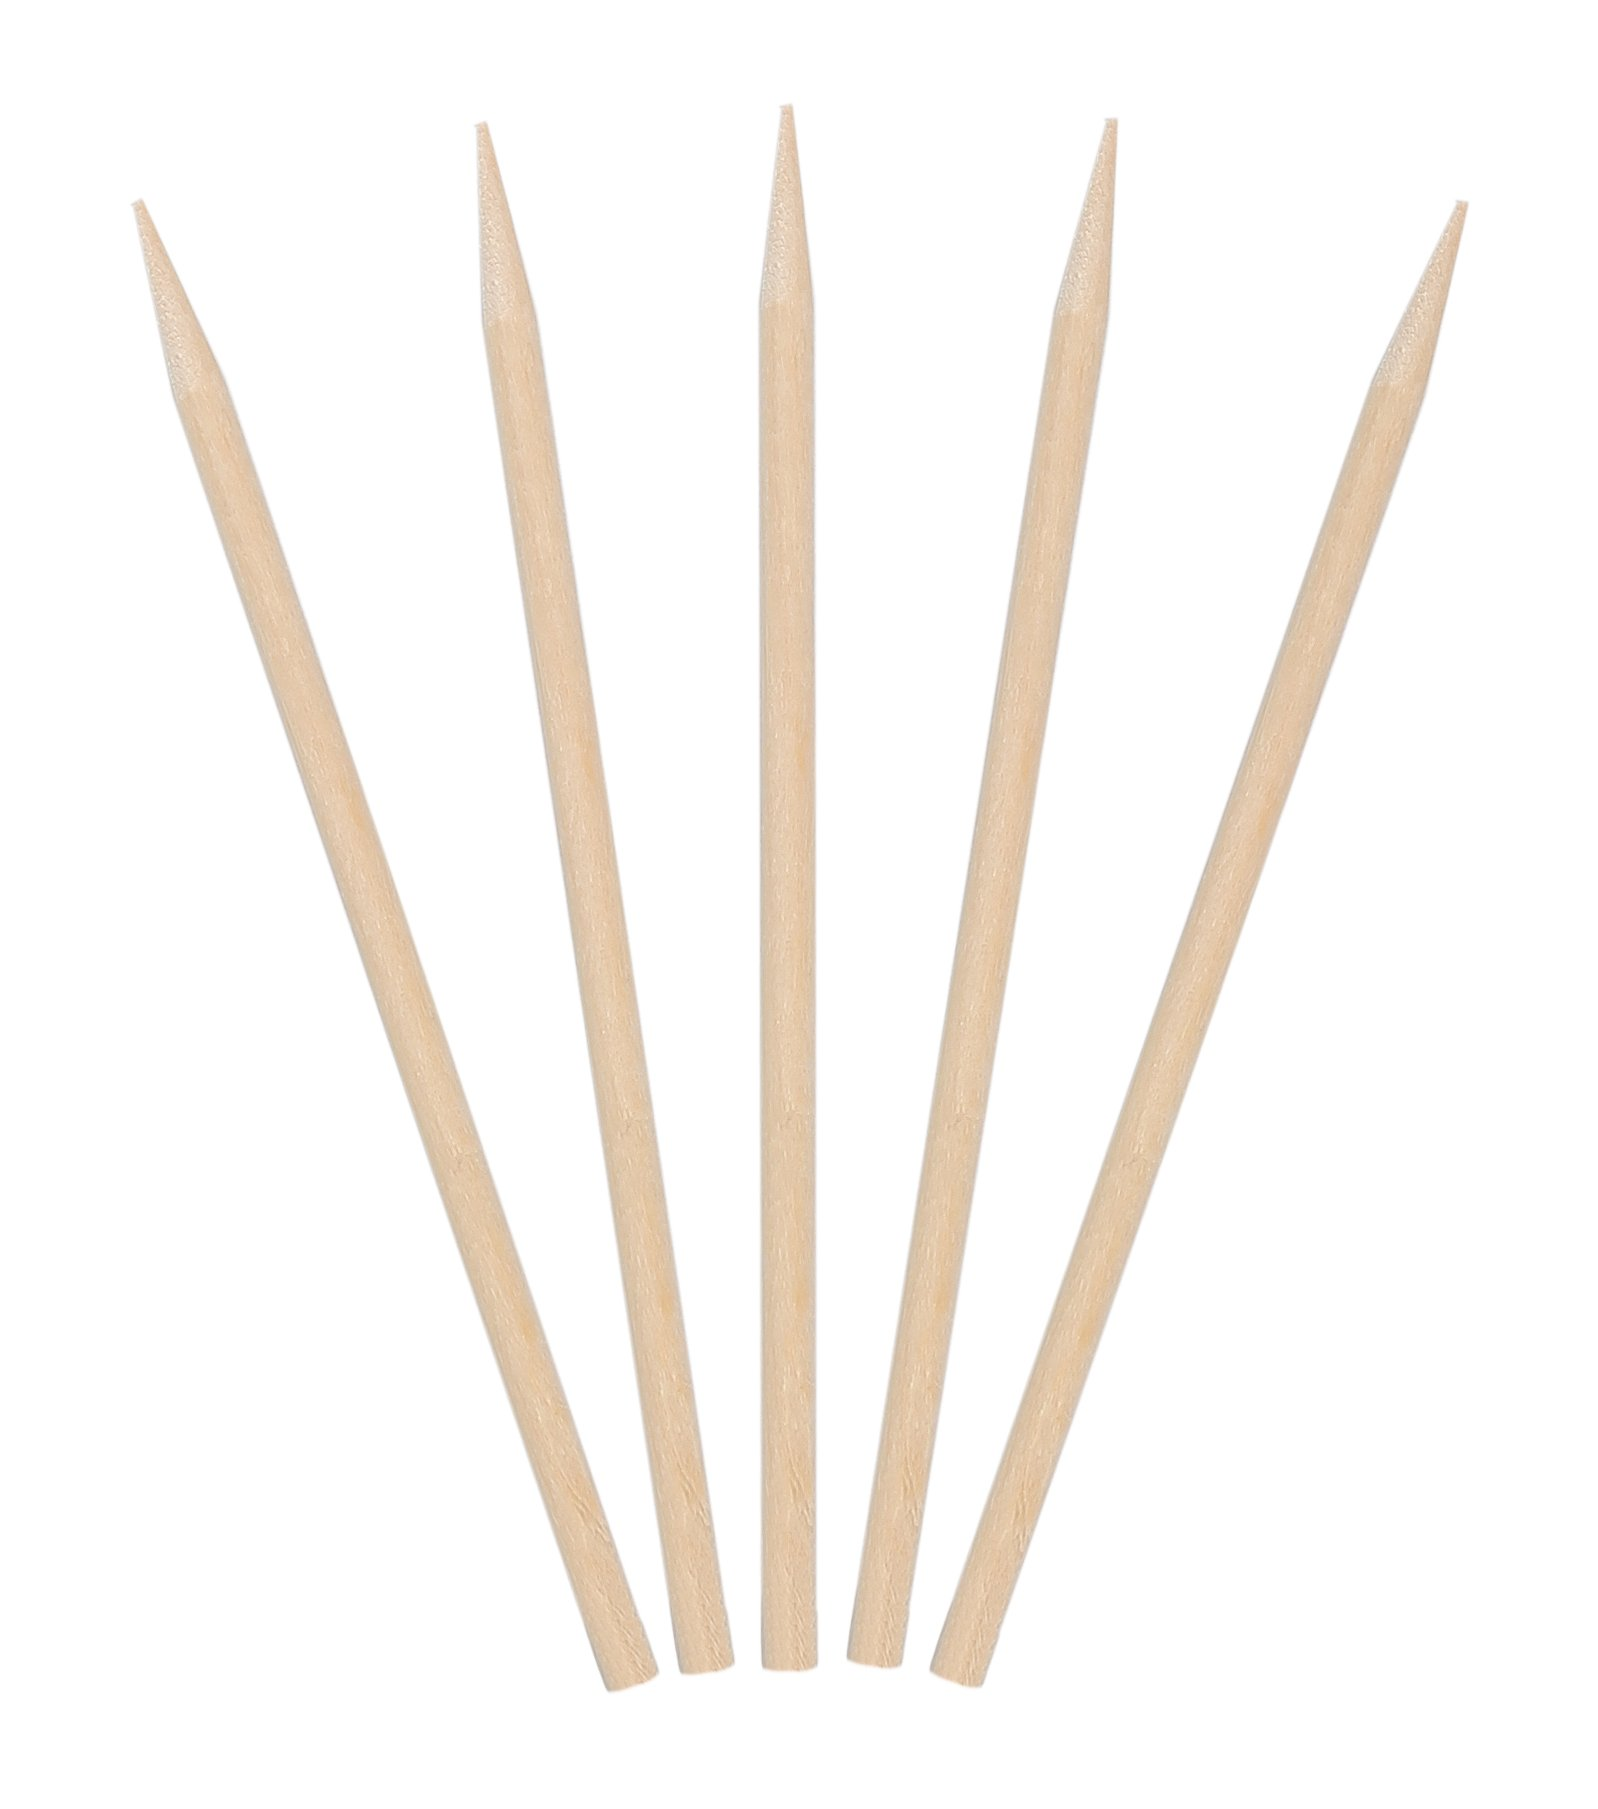 KingSeal Natural Birch Wood Meat Skewers, Sticks - 4.5 Inches, 3.5mm diam, 1000 Count